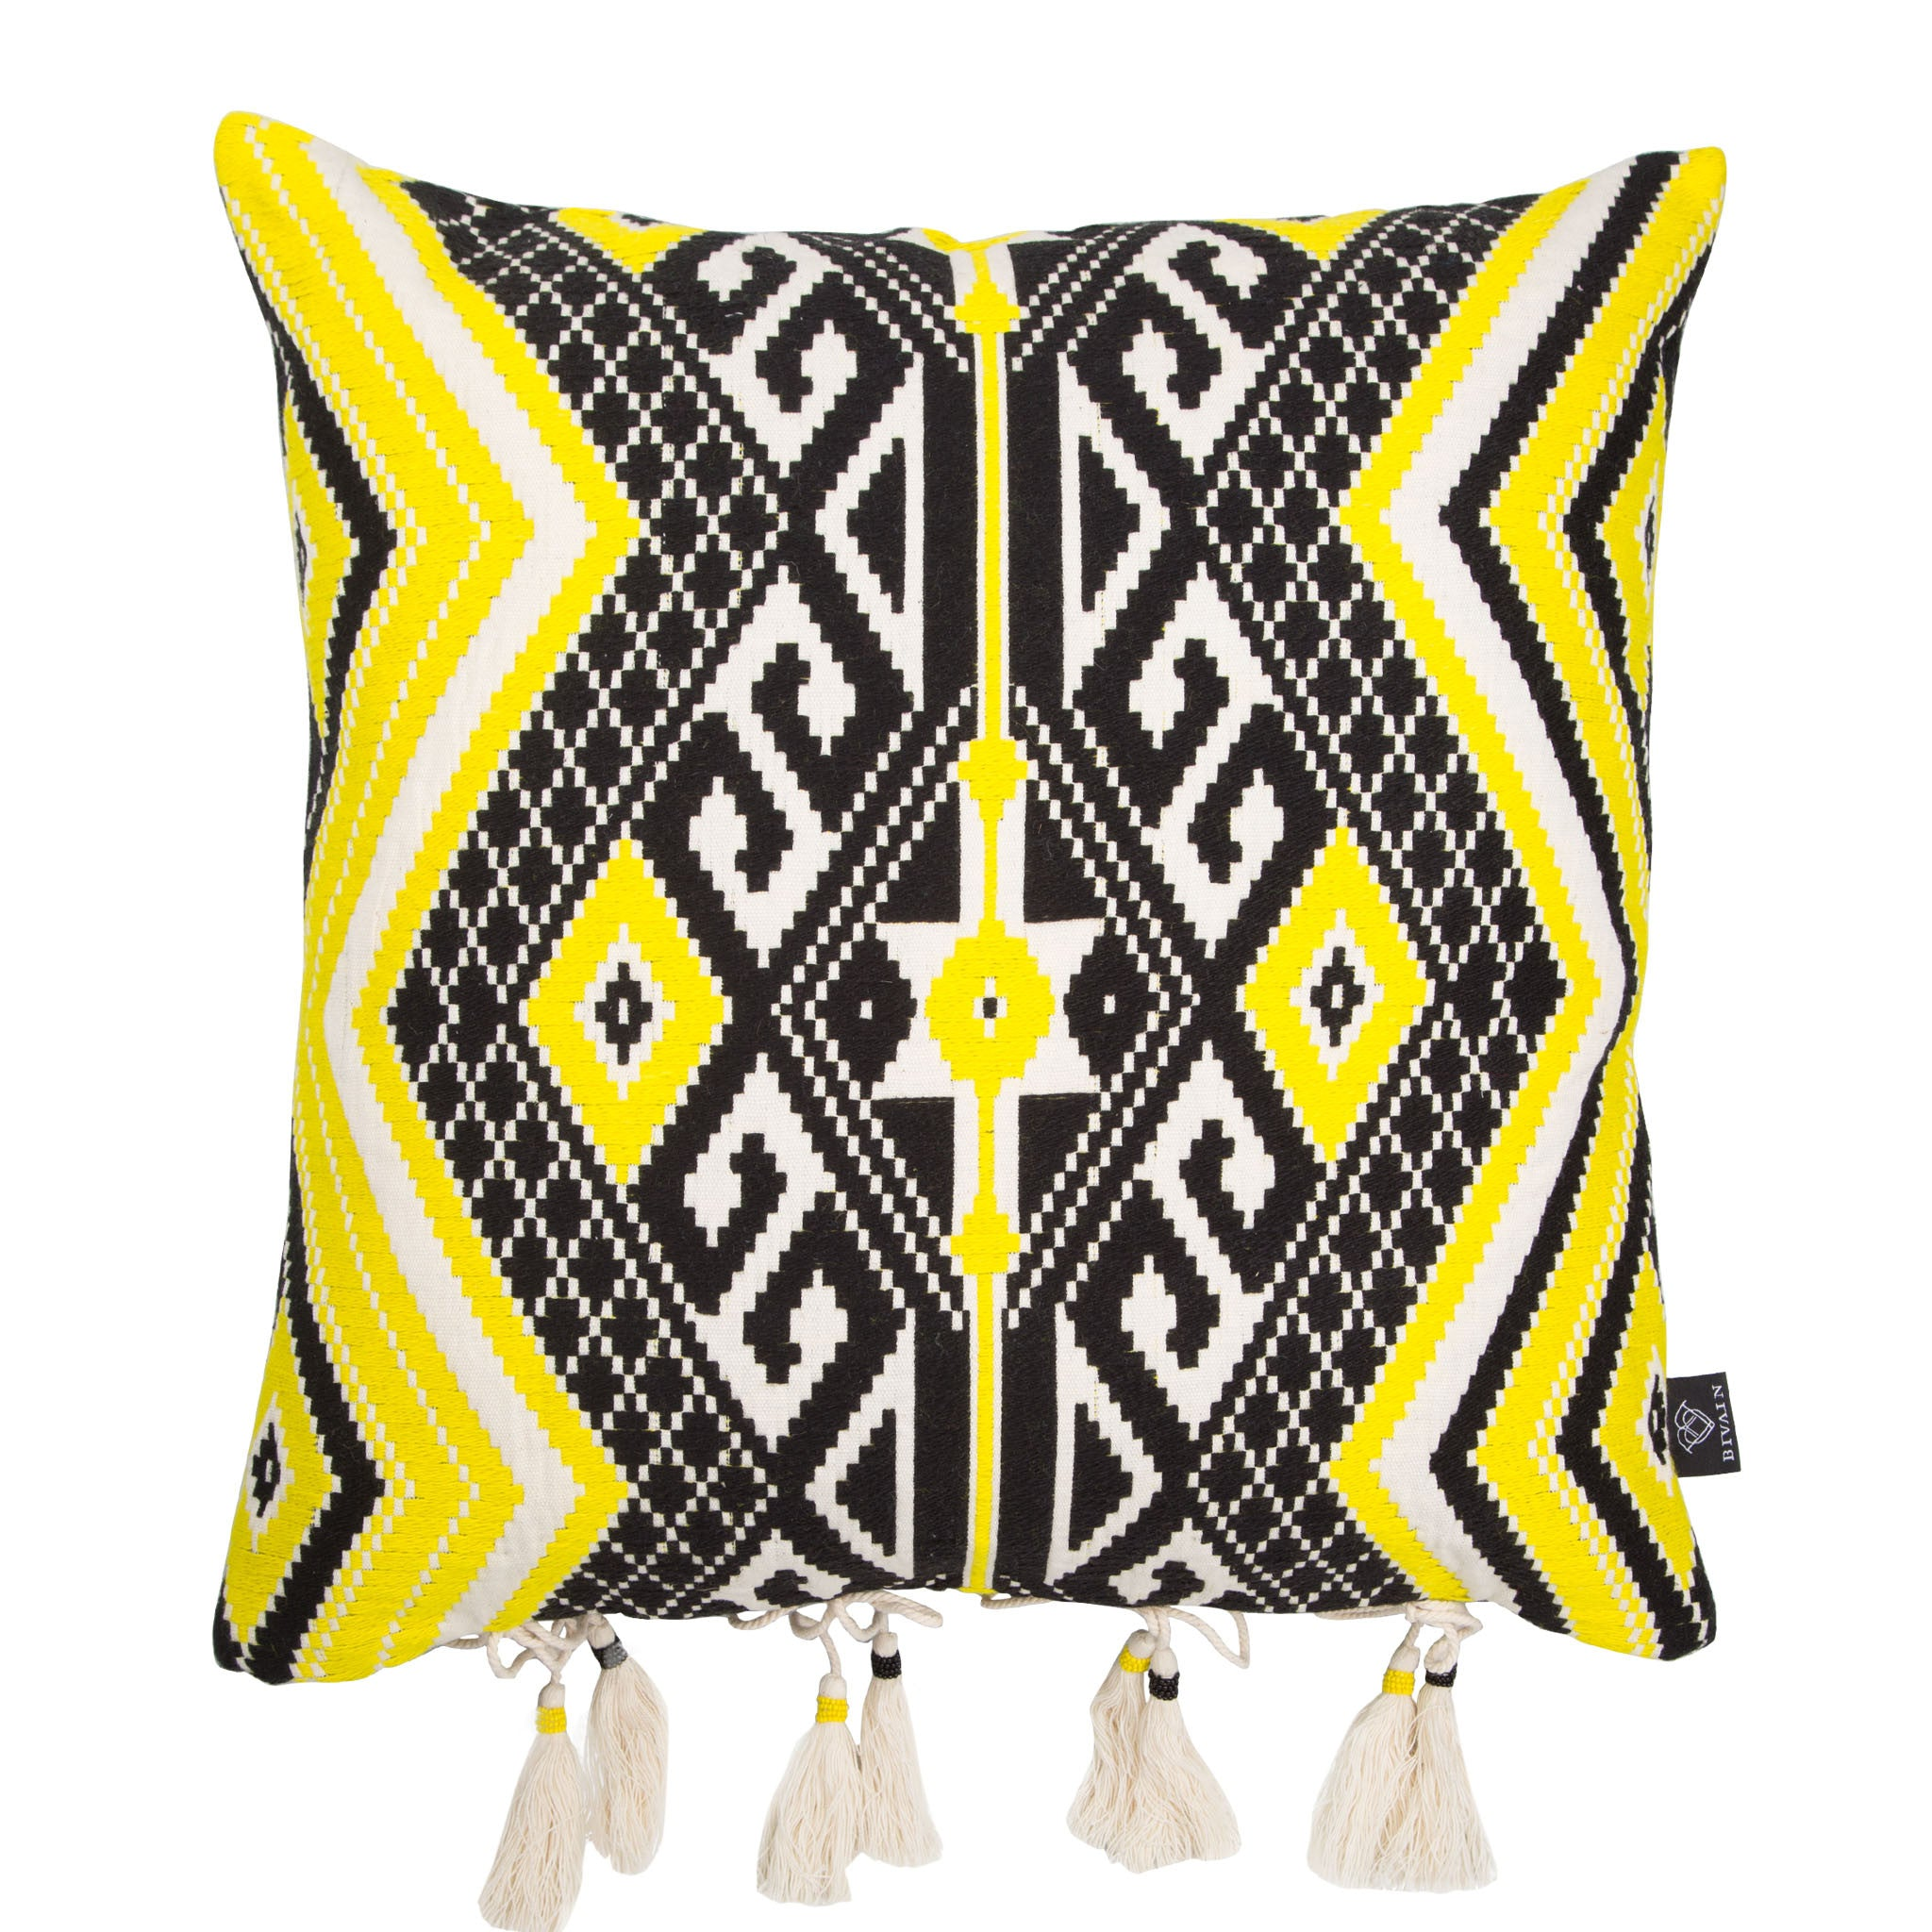 Bedouin-style yellow, black & white tasselled cotton cushion - Bivain - 2